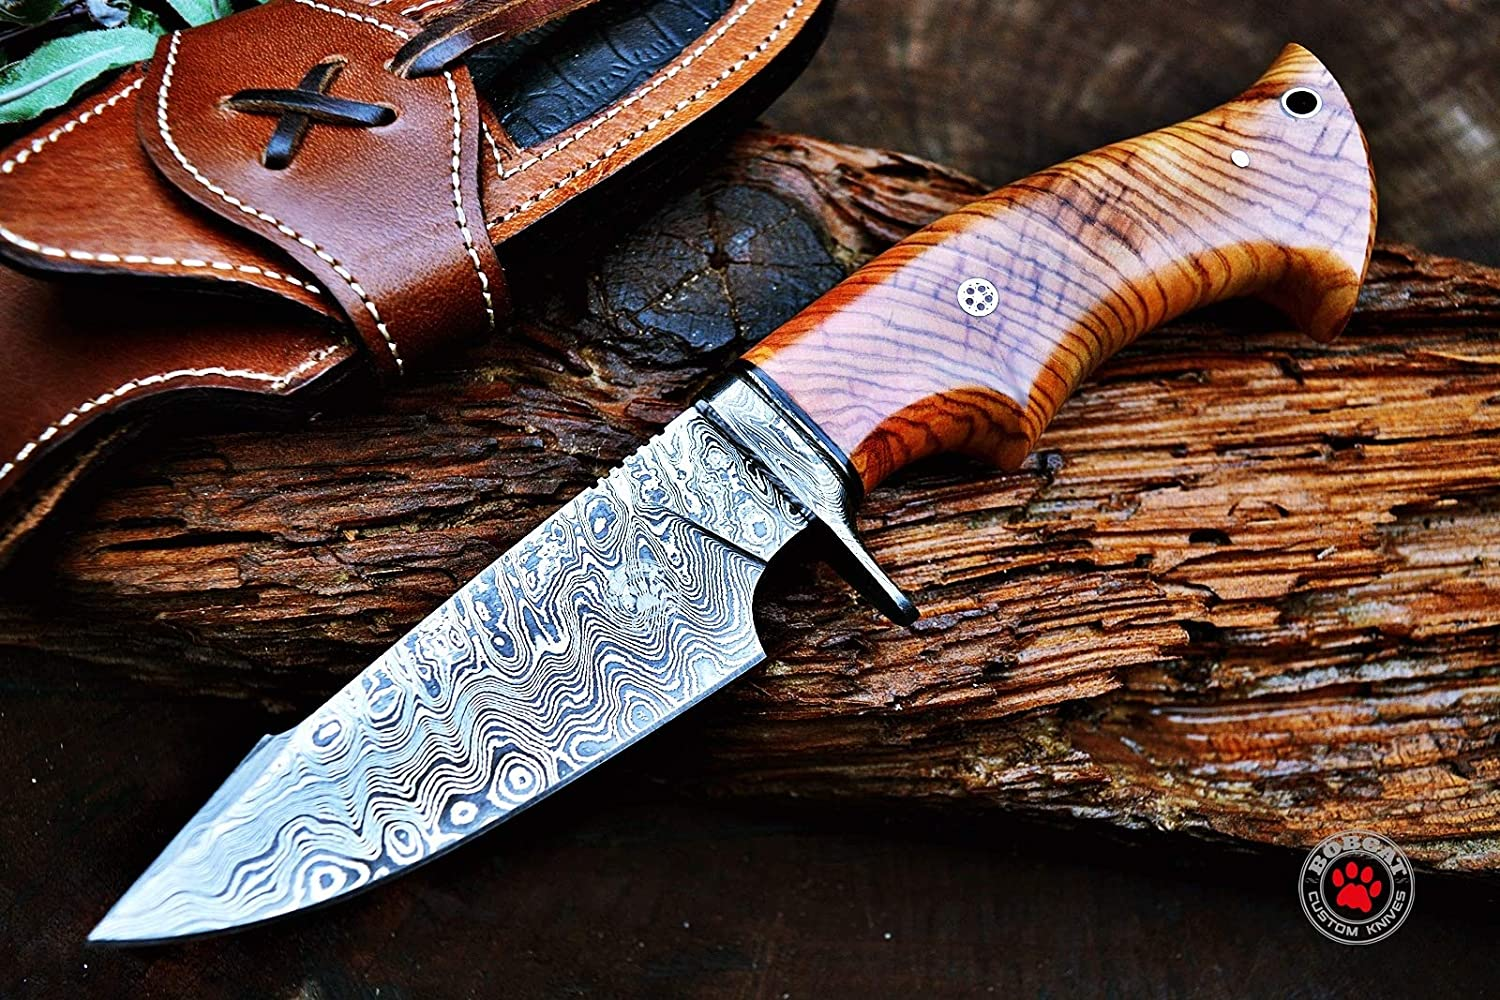 Bobcat Knives Custom Handmade Hunting Knife Damascus Steel Blade Olive Wood Handle 10 Overall